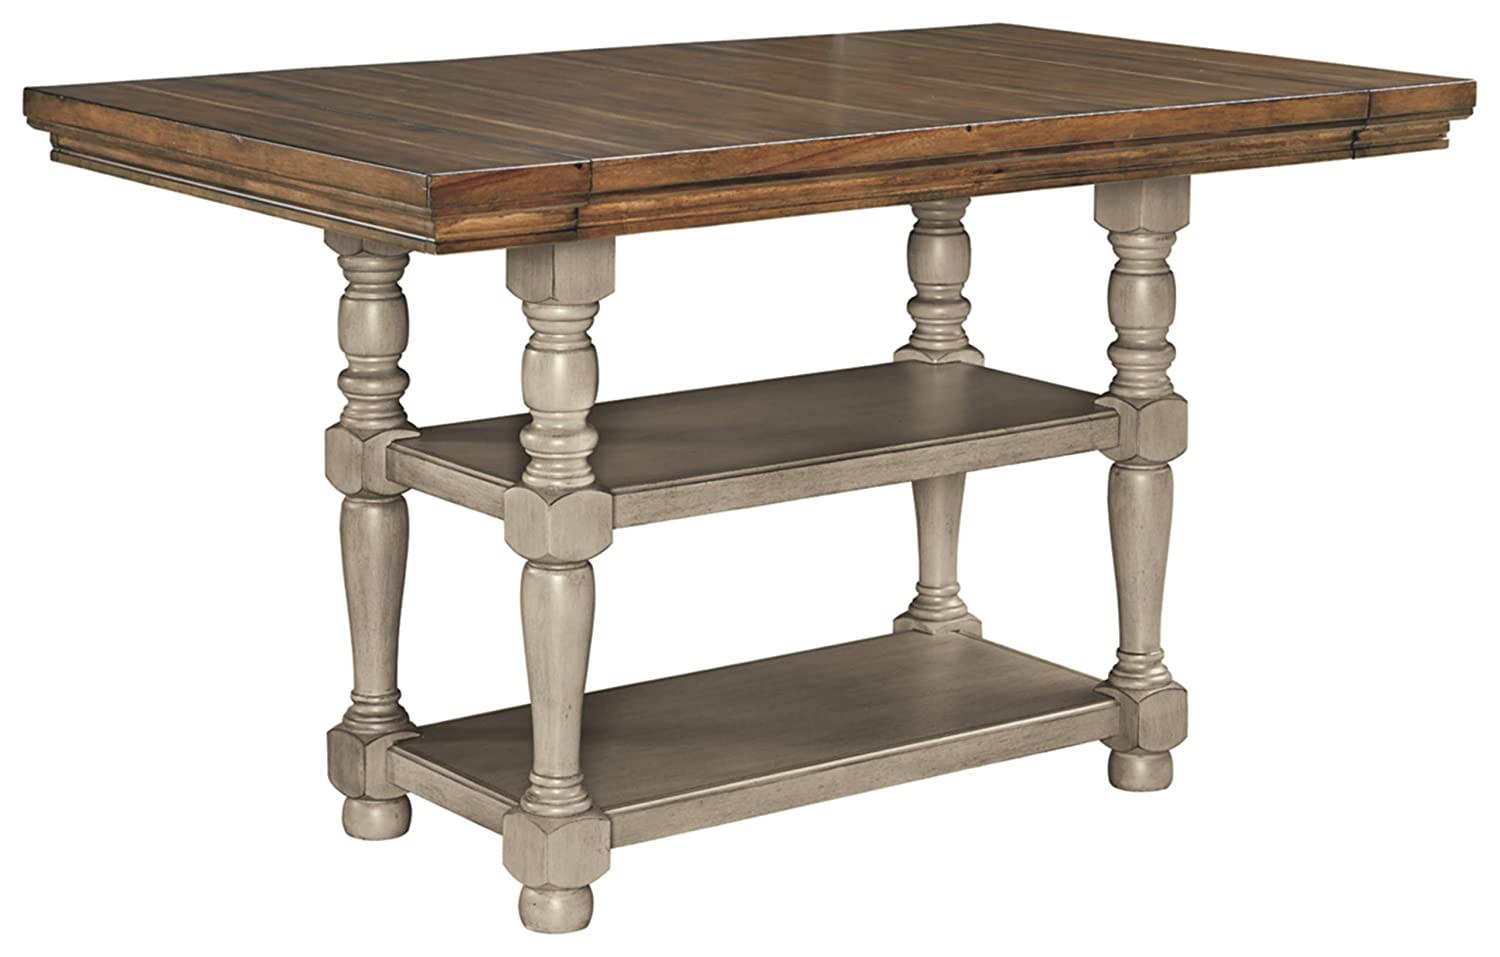 Signature Design By Ashley - Lettner Rectangular Dining Room Counter Extention Table - Casual Style - Gray/Brown